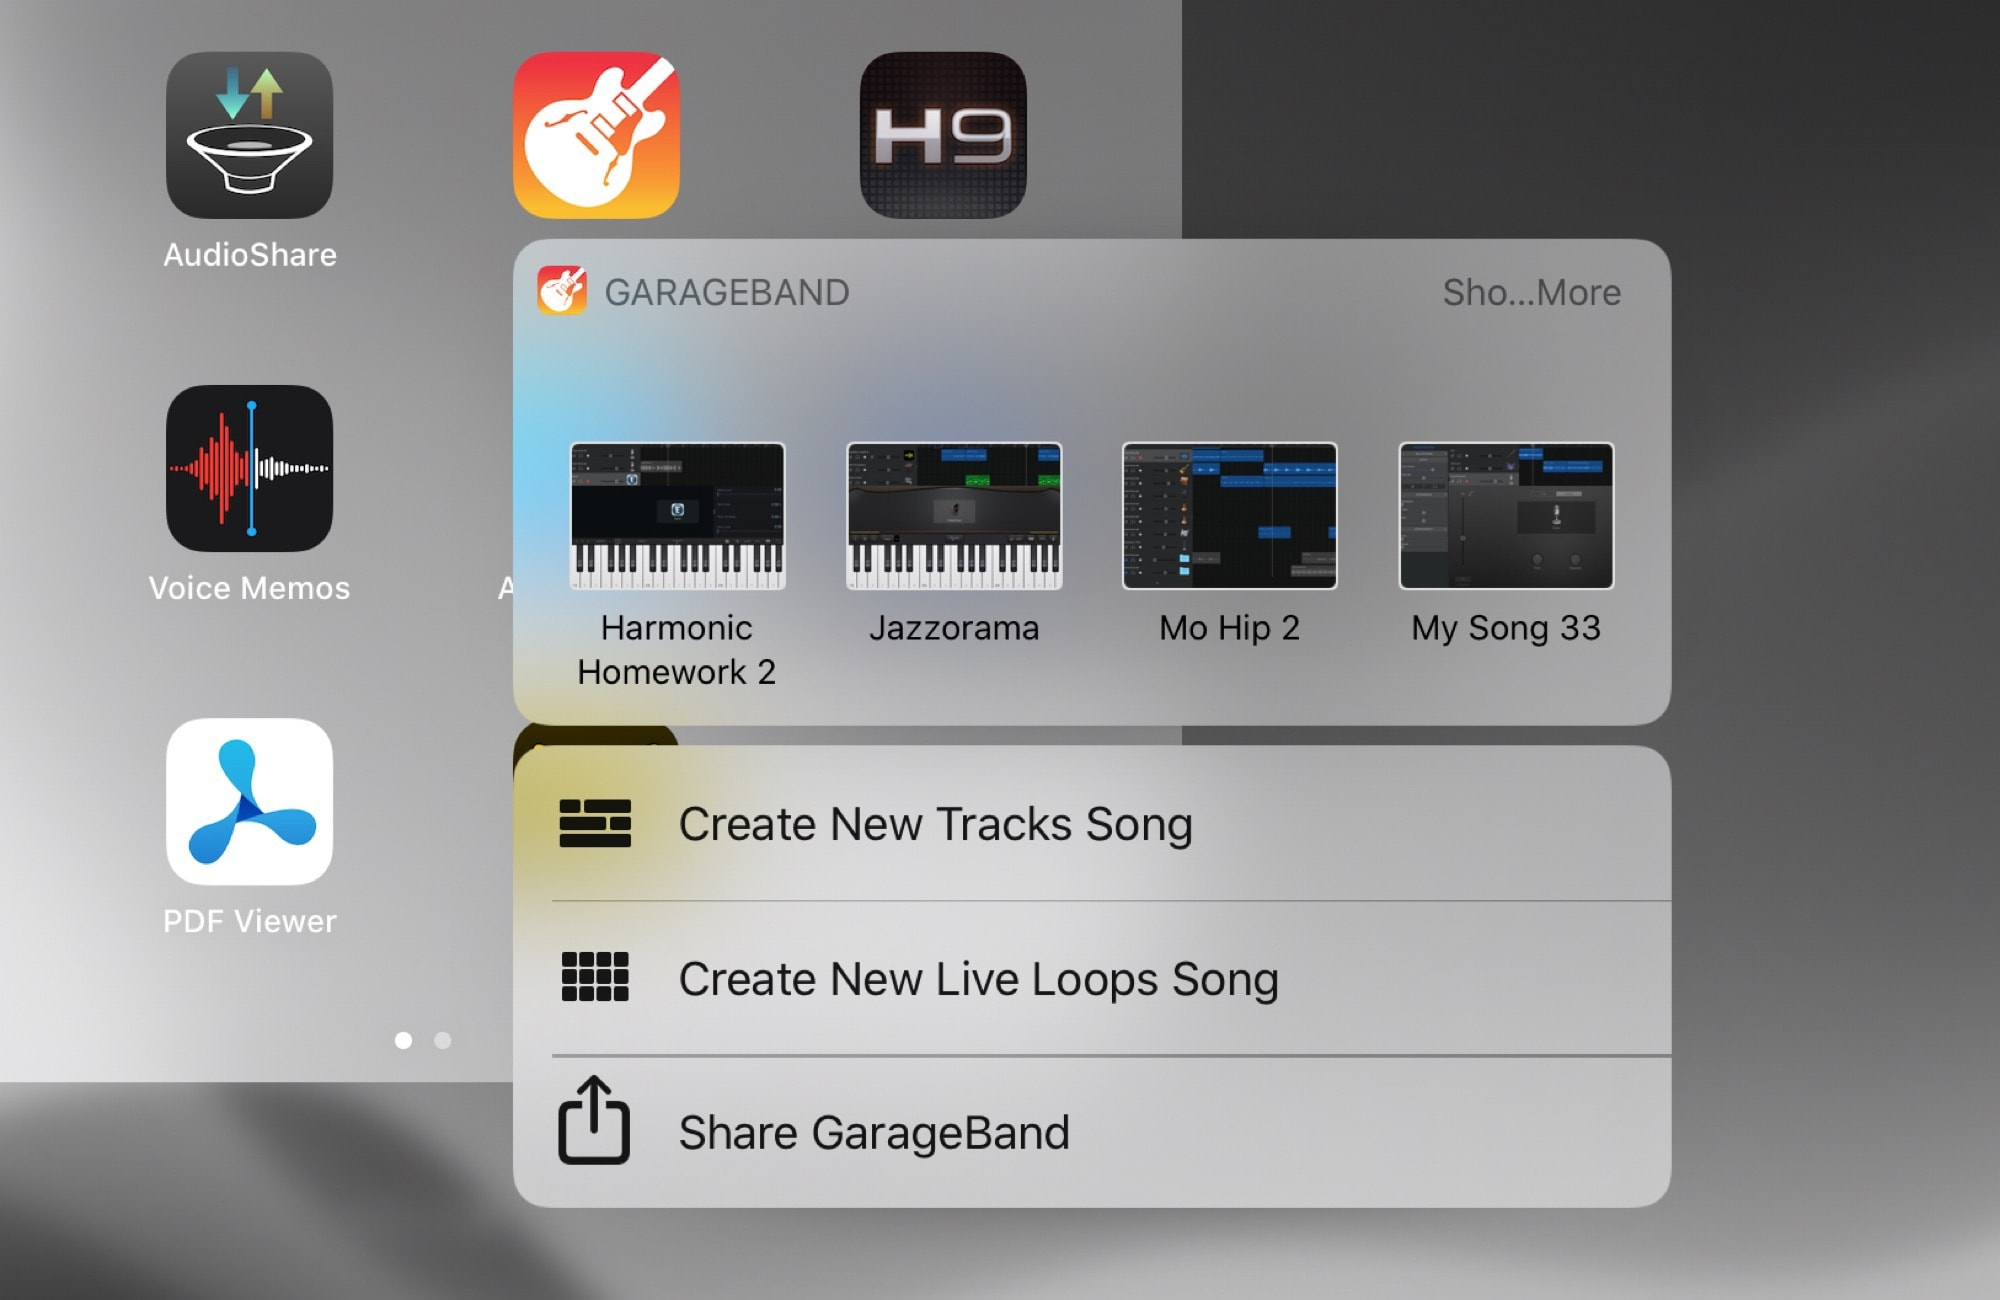 Quickly create a new song in GarageBand using 3D Touch iPad functionality.